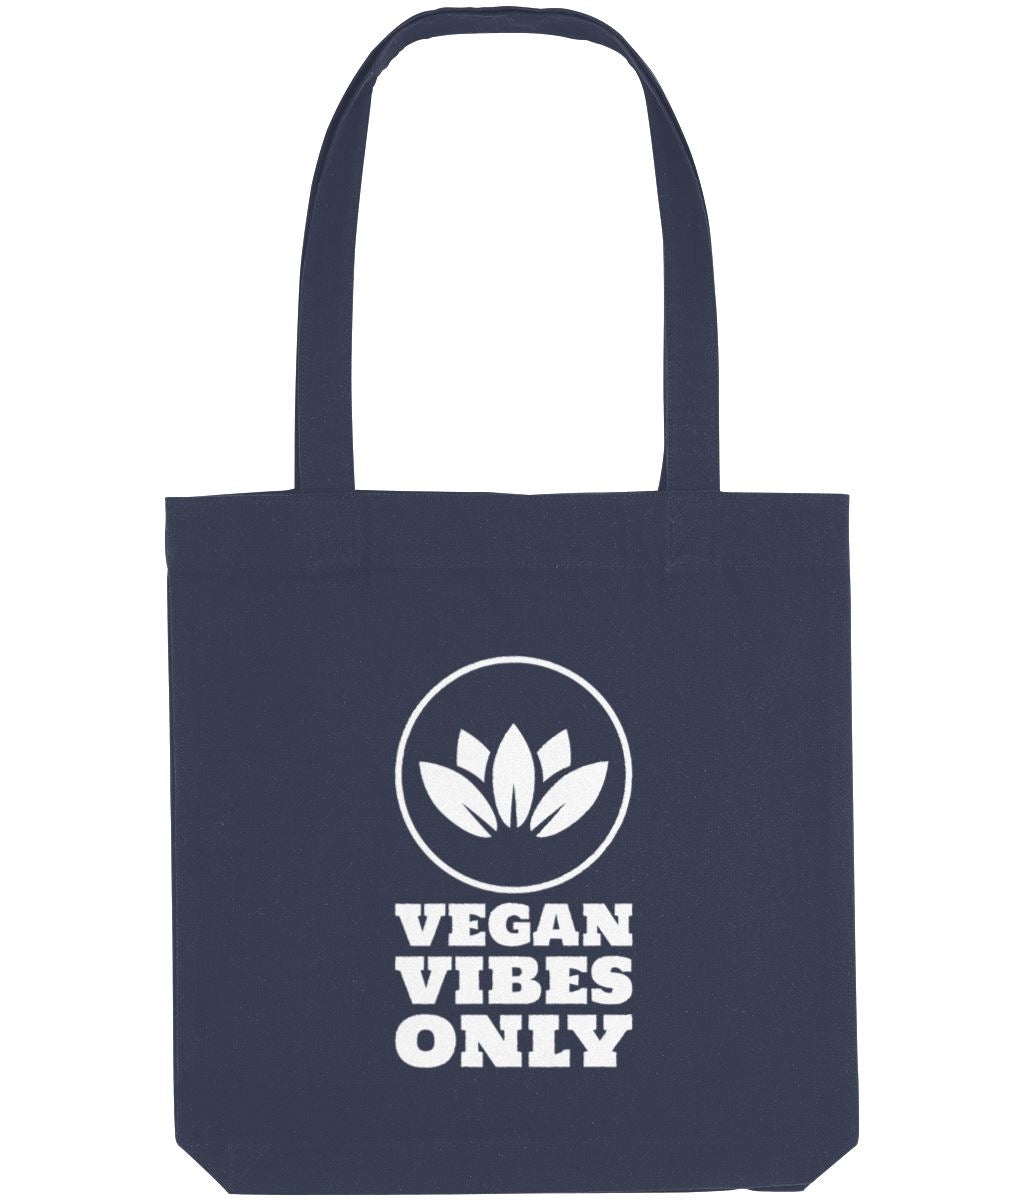 """Vegan Vibes Only"" Cruelty-Free Tote Bag Clothing Vegan Original Midnight Blue"